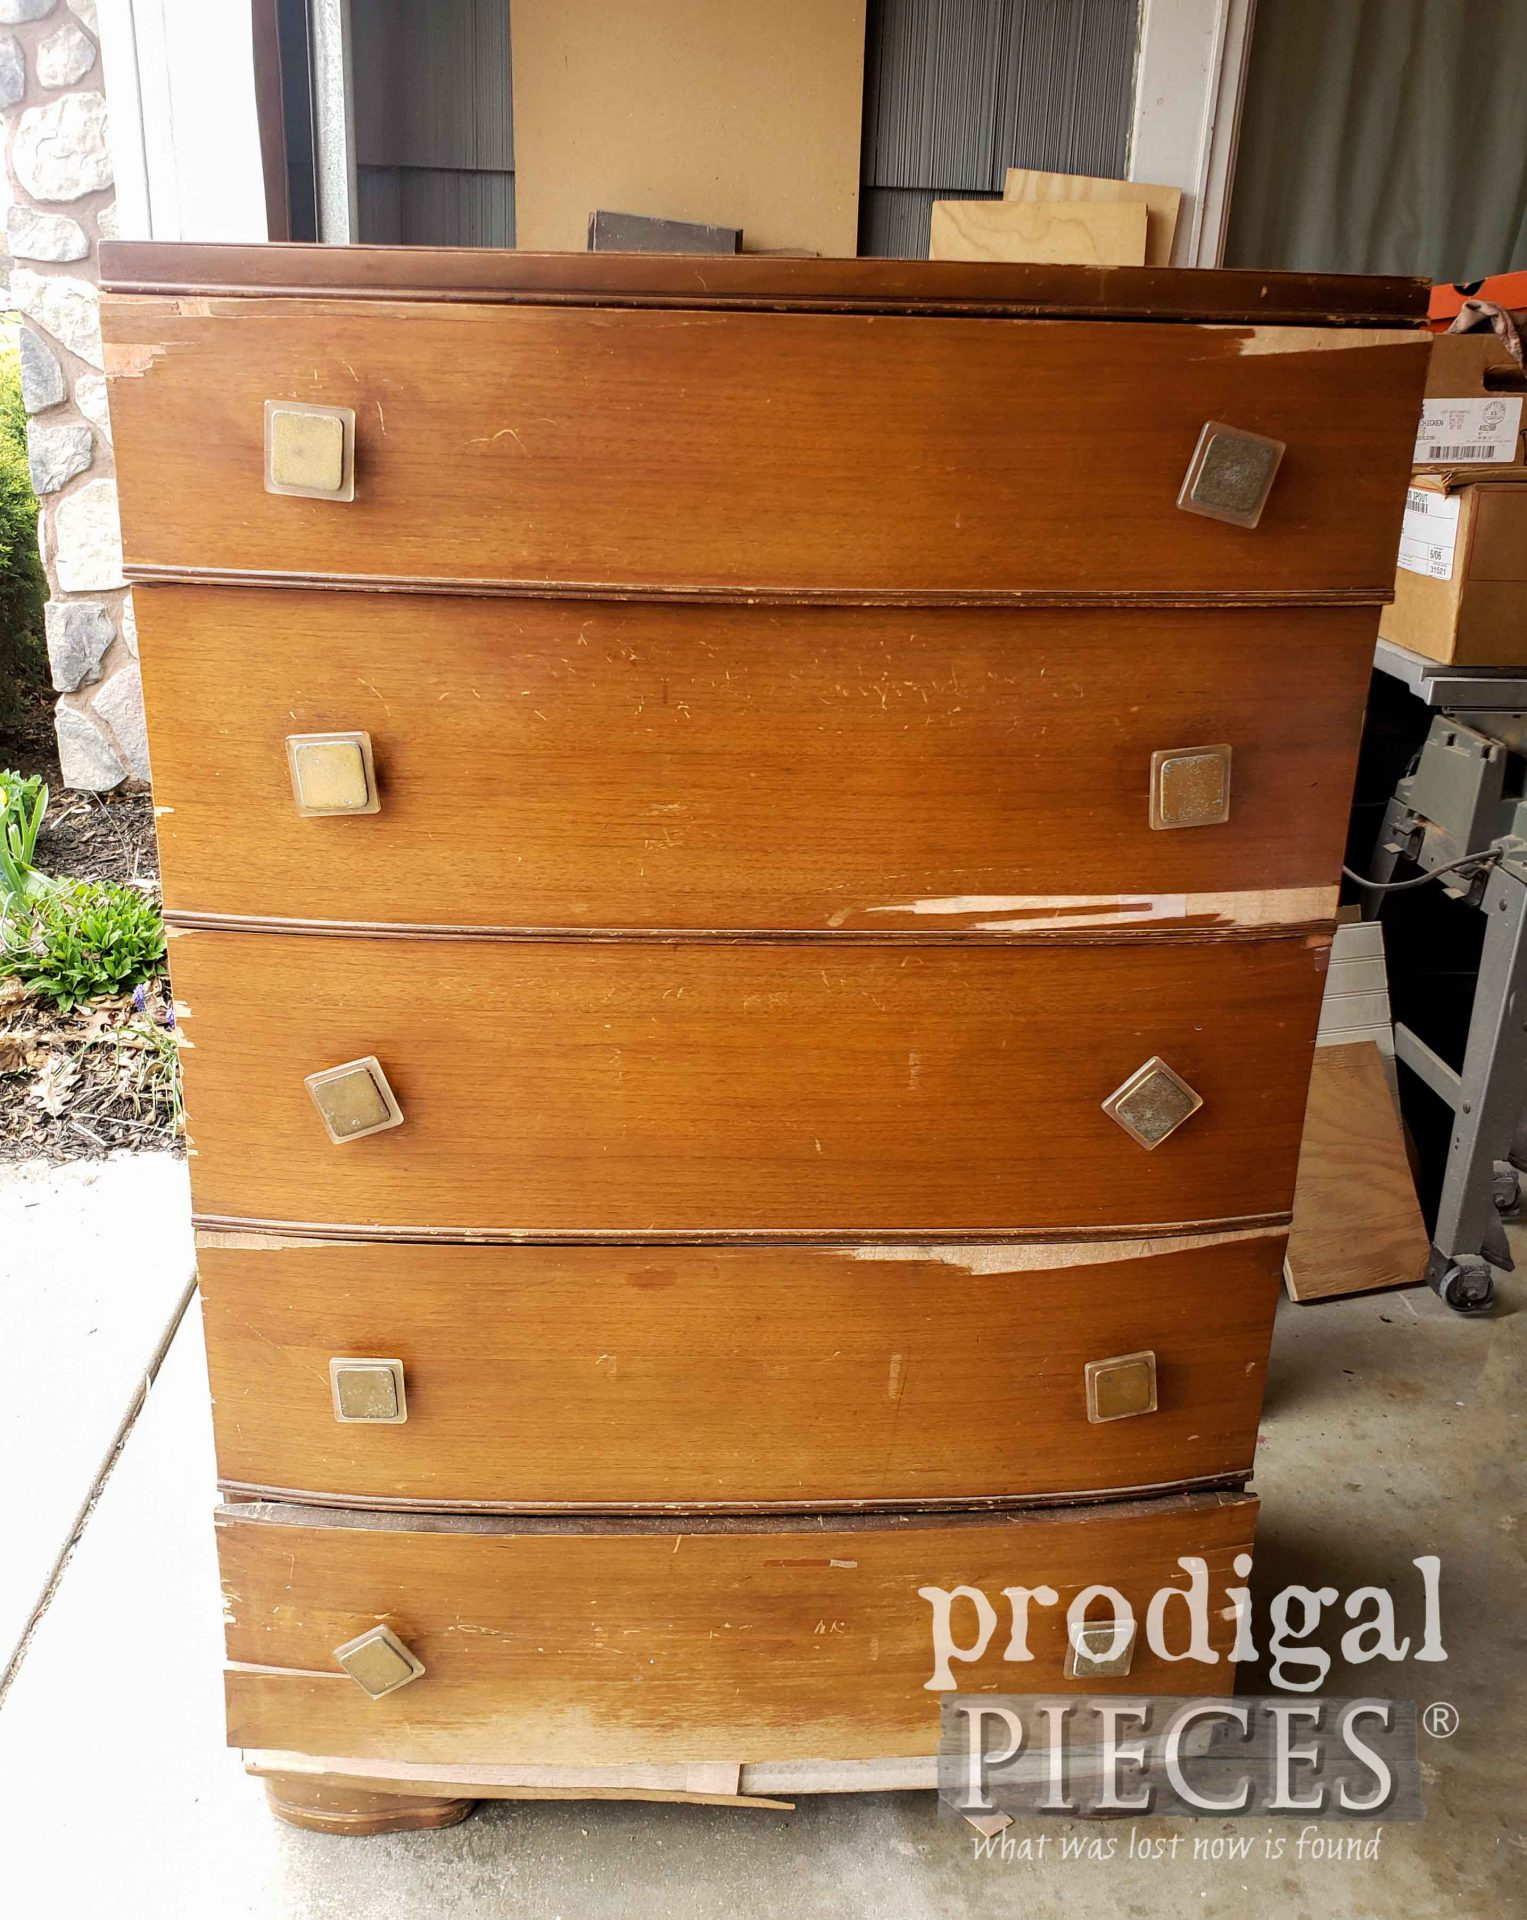 Antique Art Deco Chest of Drawers Before Makeover by Larissa of Prodigal Pieces | prodigalpieces.com #prodigalpieces